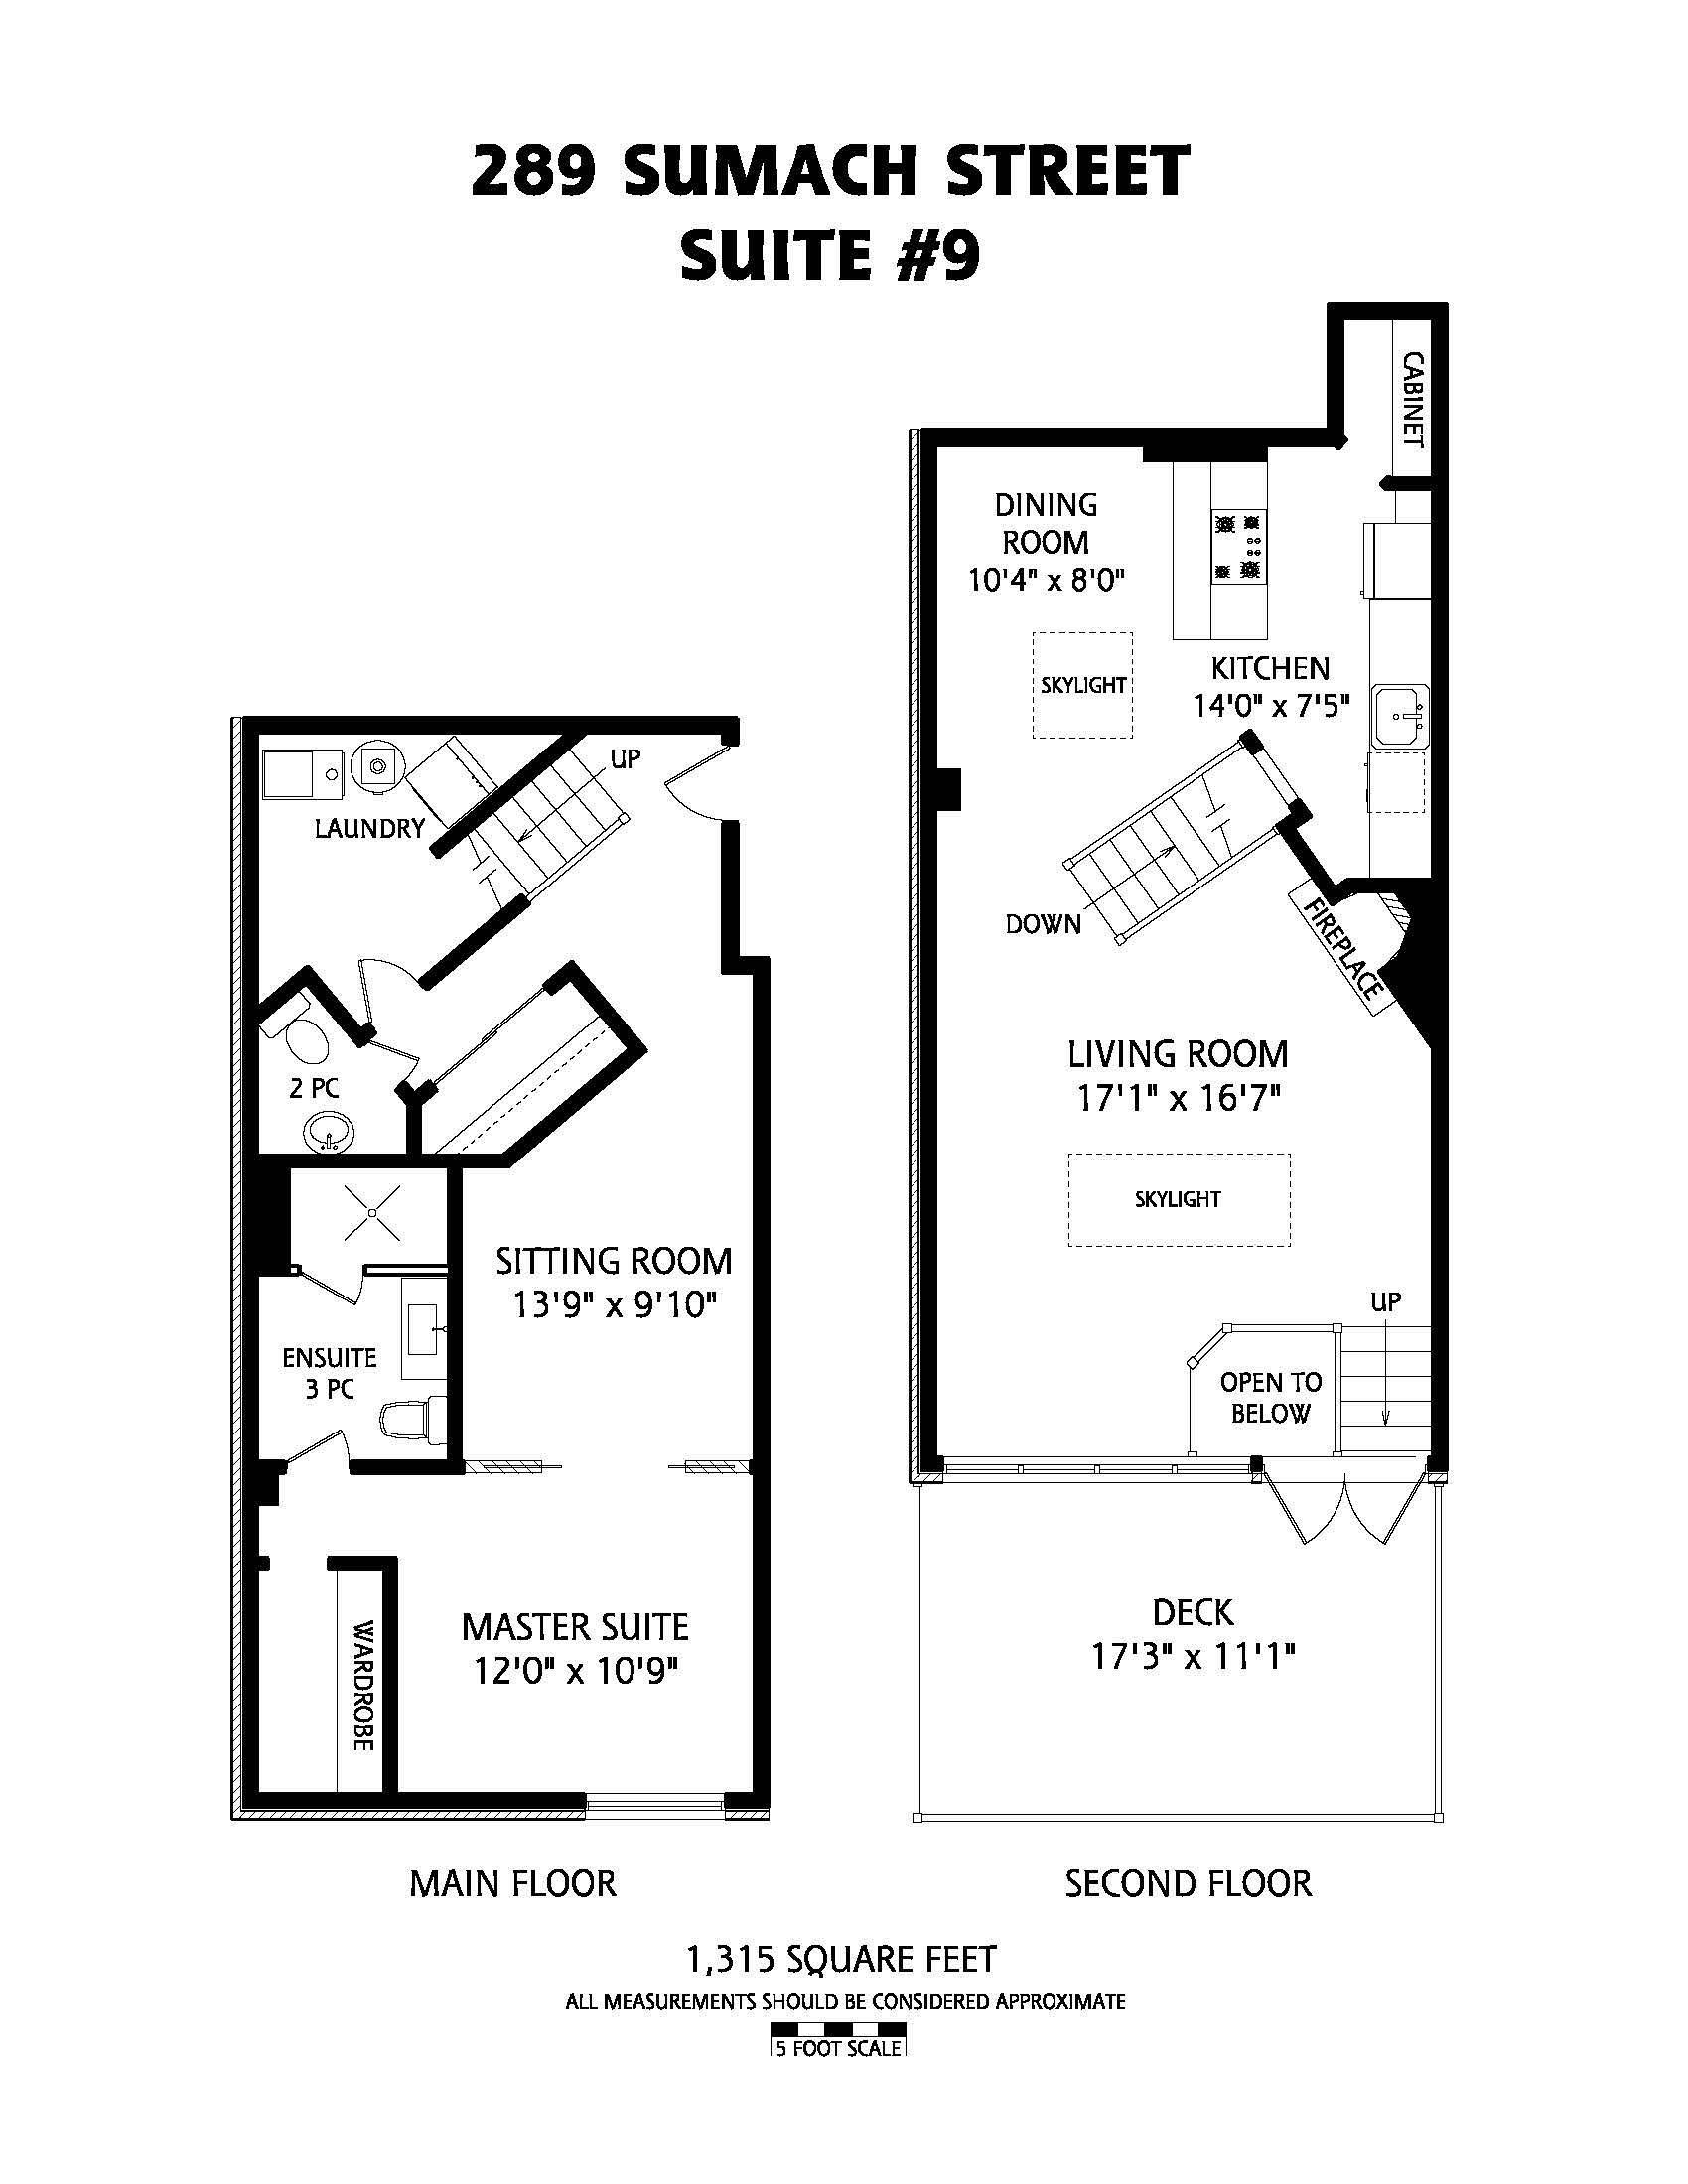 UPLOAD289SumachSt9FloorPlans2019.resize_1700x.jpg